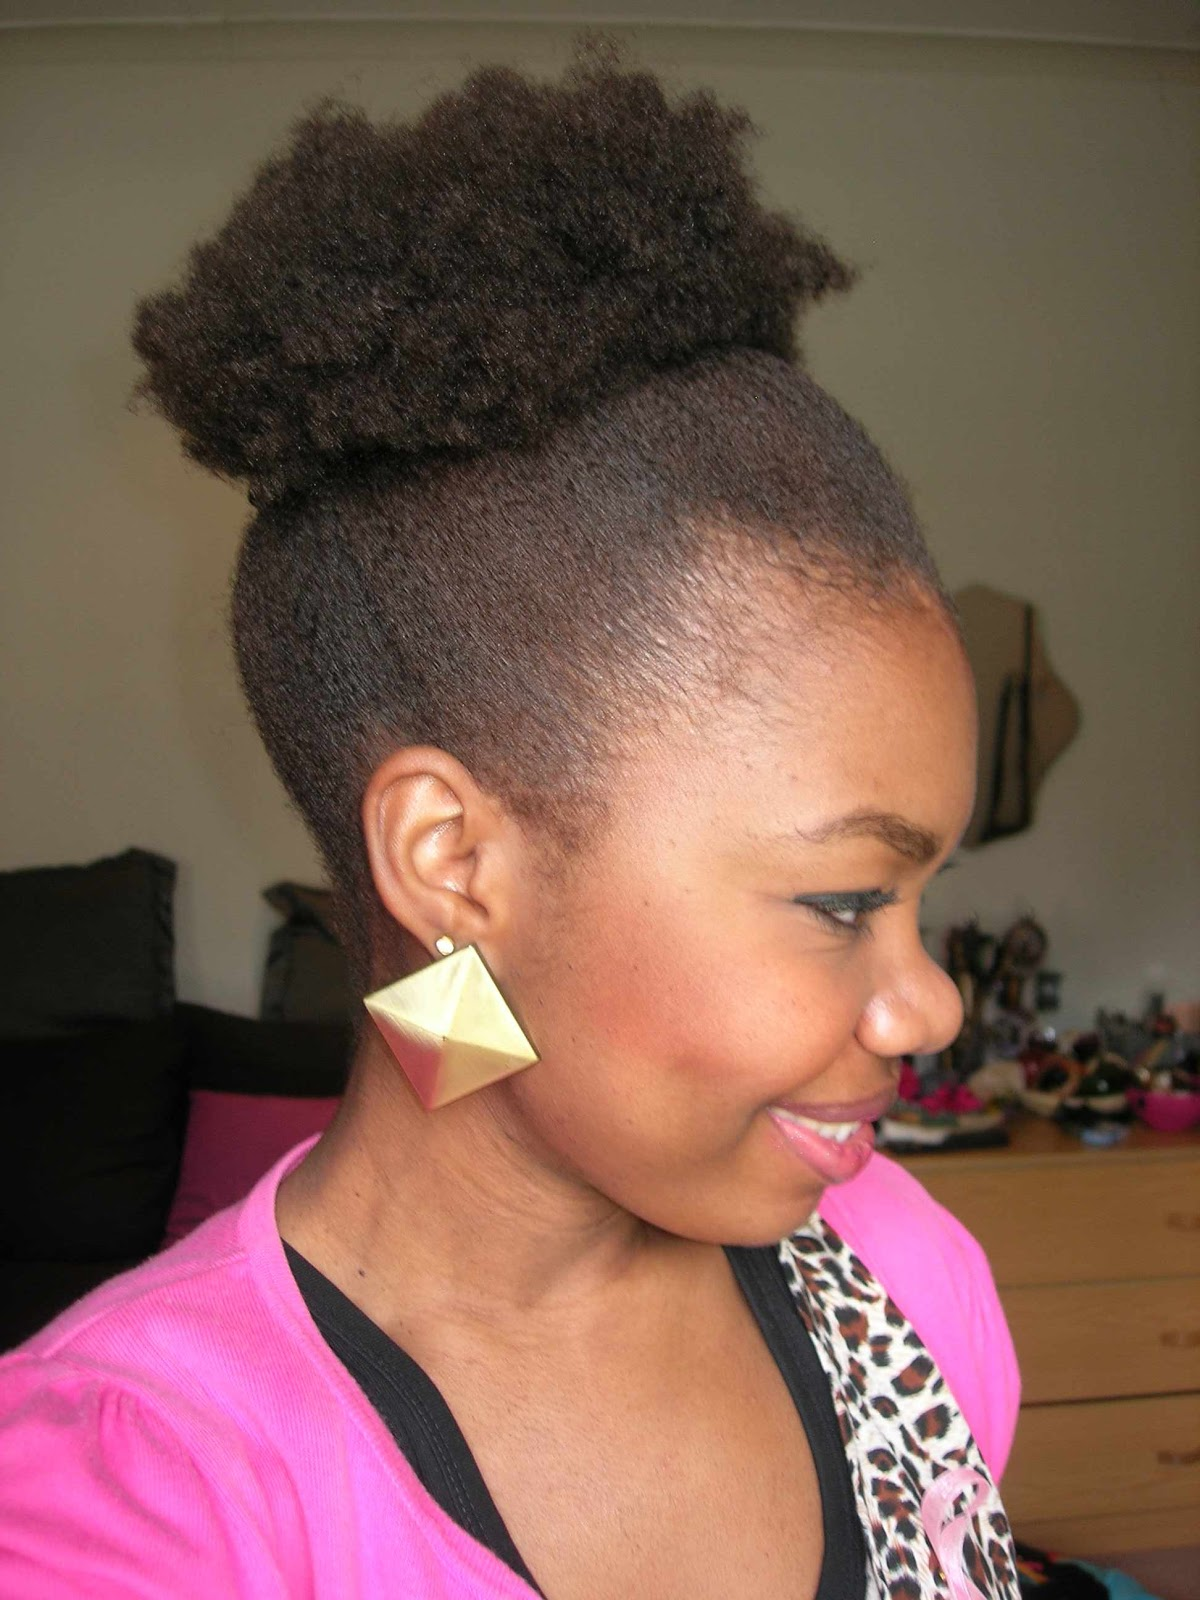 natural hair styles south africa south hairstyles for hair hair 4849 | DSCN4631